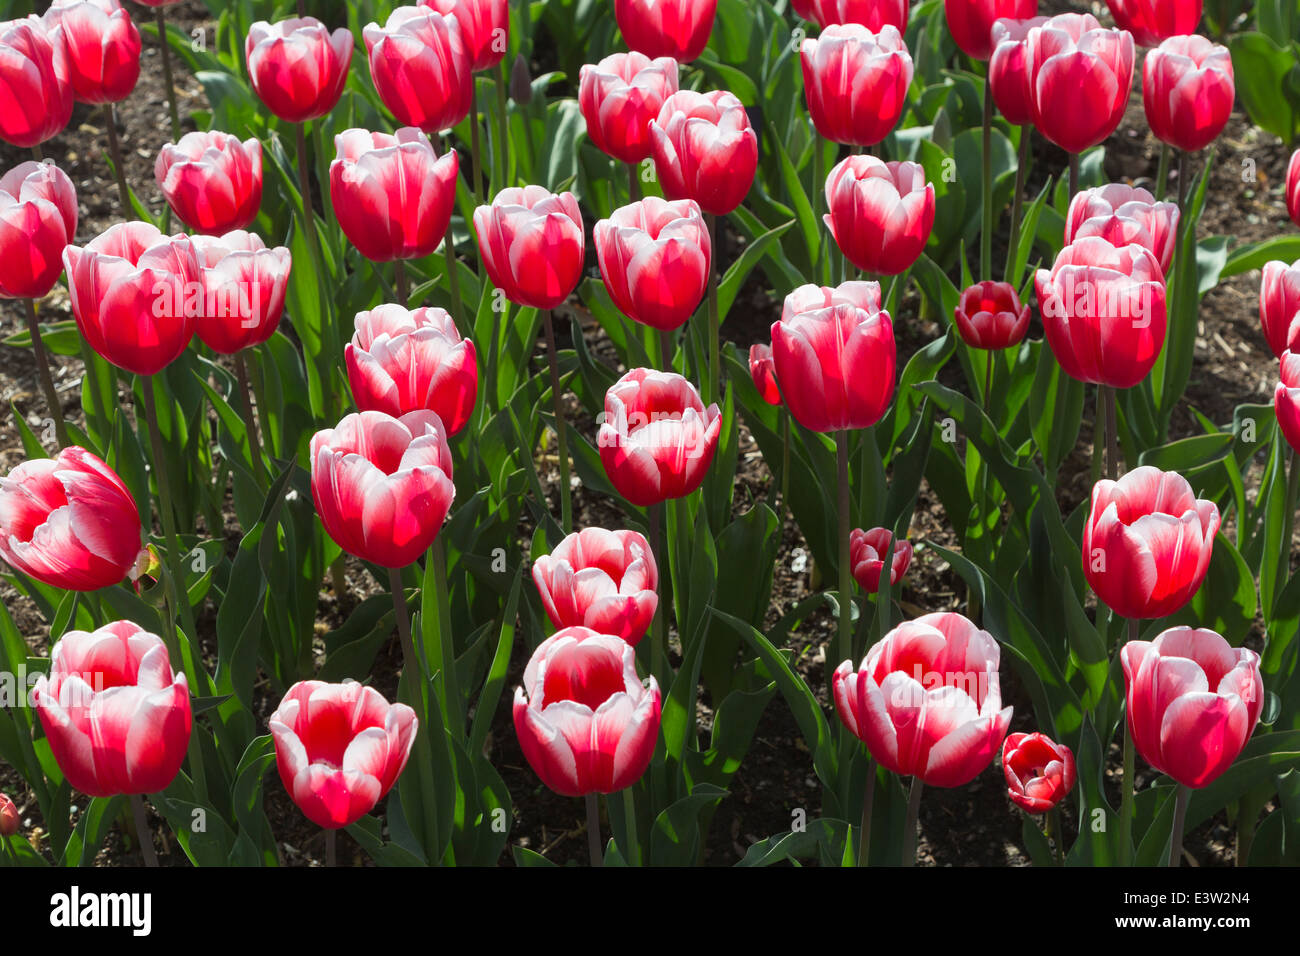 Red and white tulip, 'Timeless' flowering at RHS Wisley, Surrey, UK in springtime Stock Photo